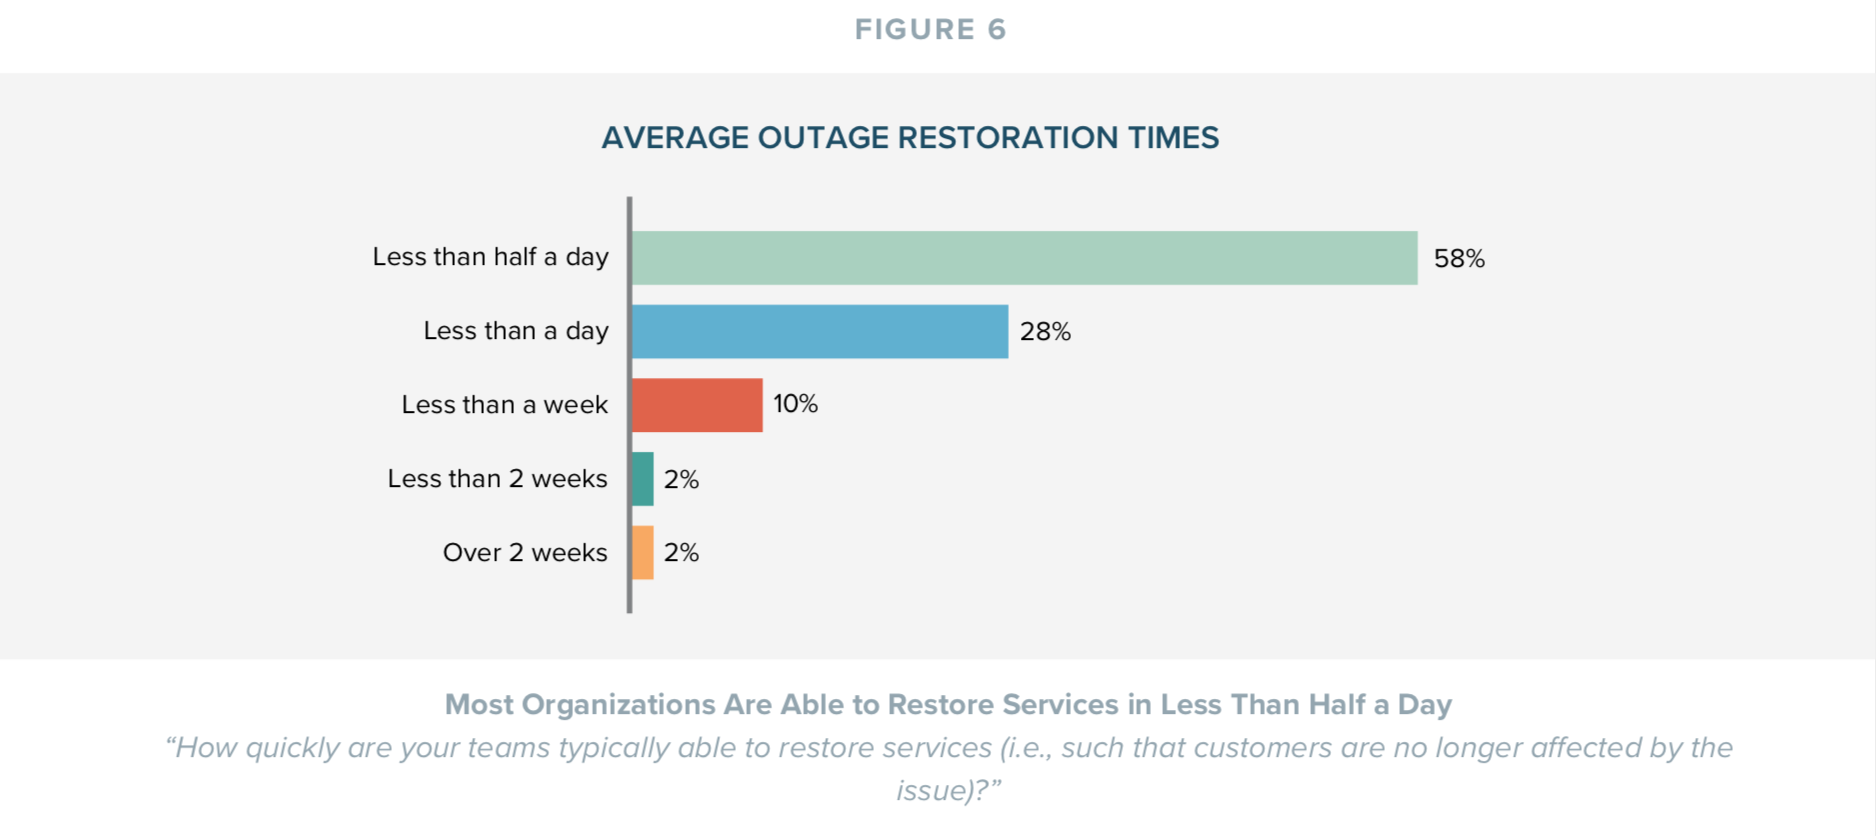 Average Outage Restoration Times